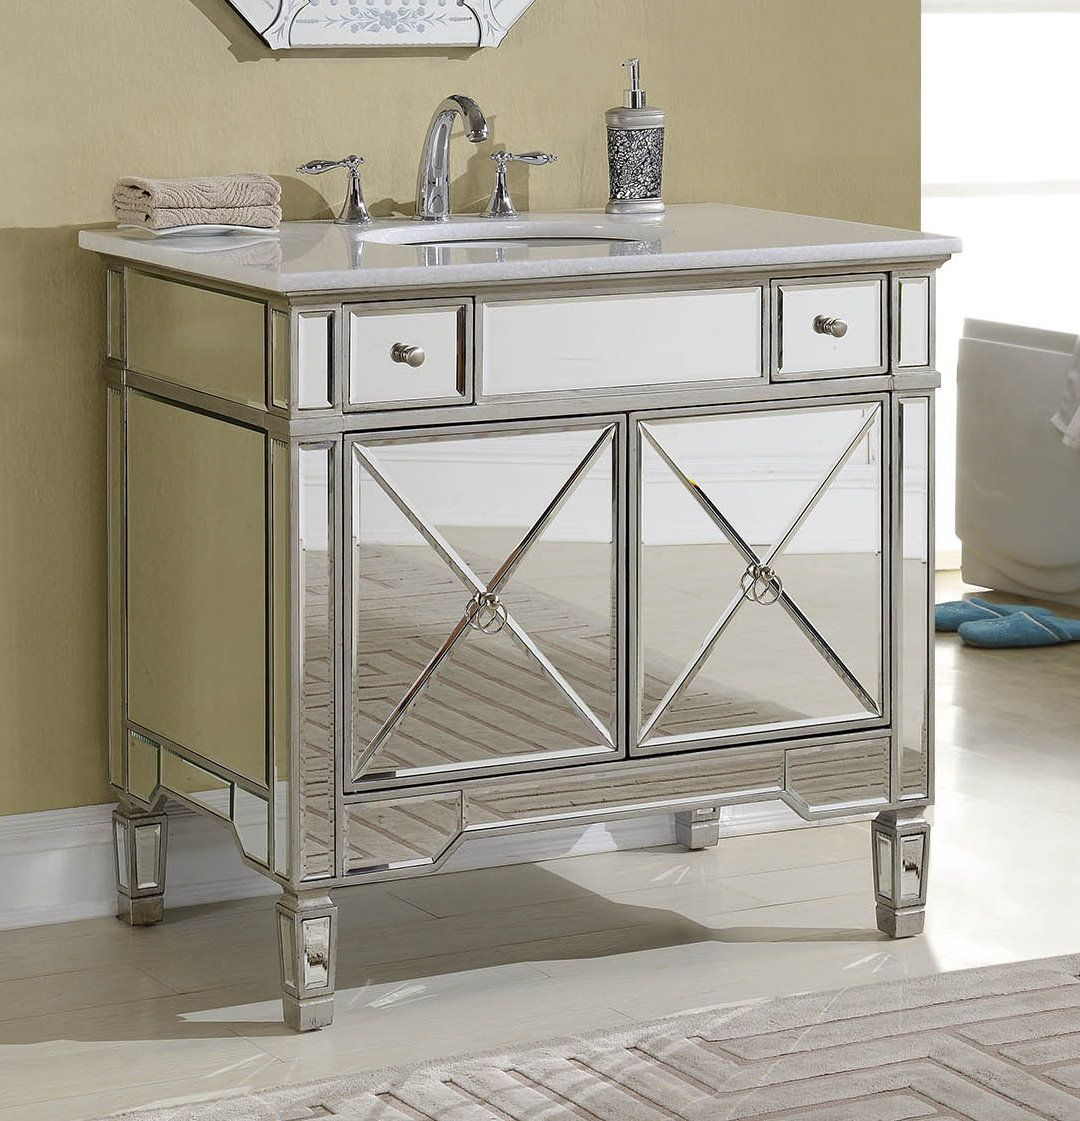 Make Photo Gallery This Adelina inch Mirrored Silver Bathroom Vanity will add elegance and function to your bath